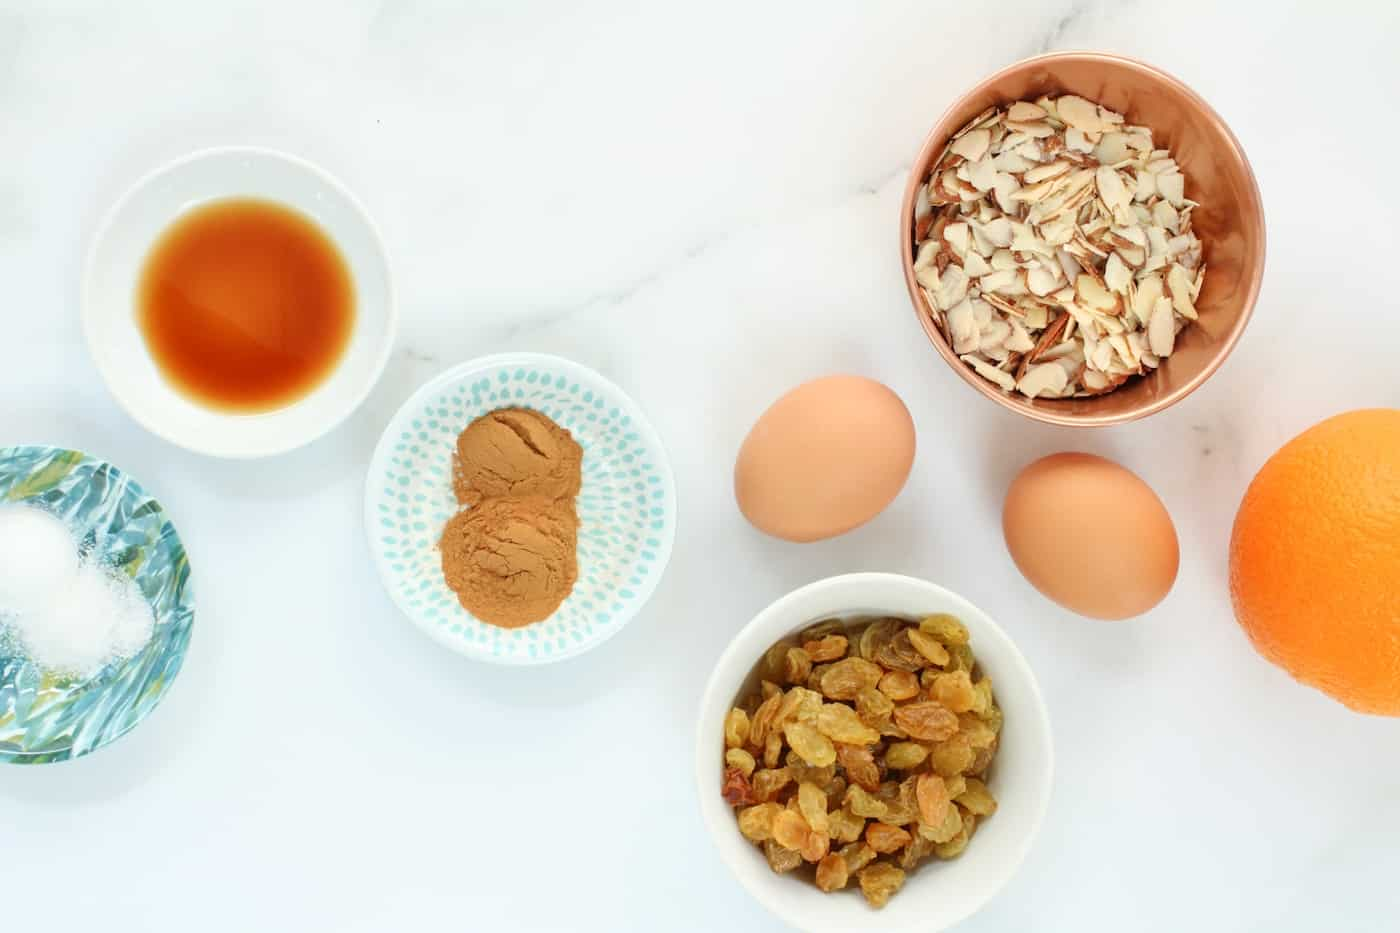 ingredients for Orange Almond Baked Oatmeal